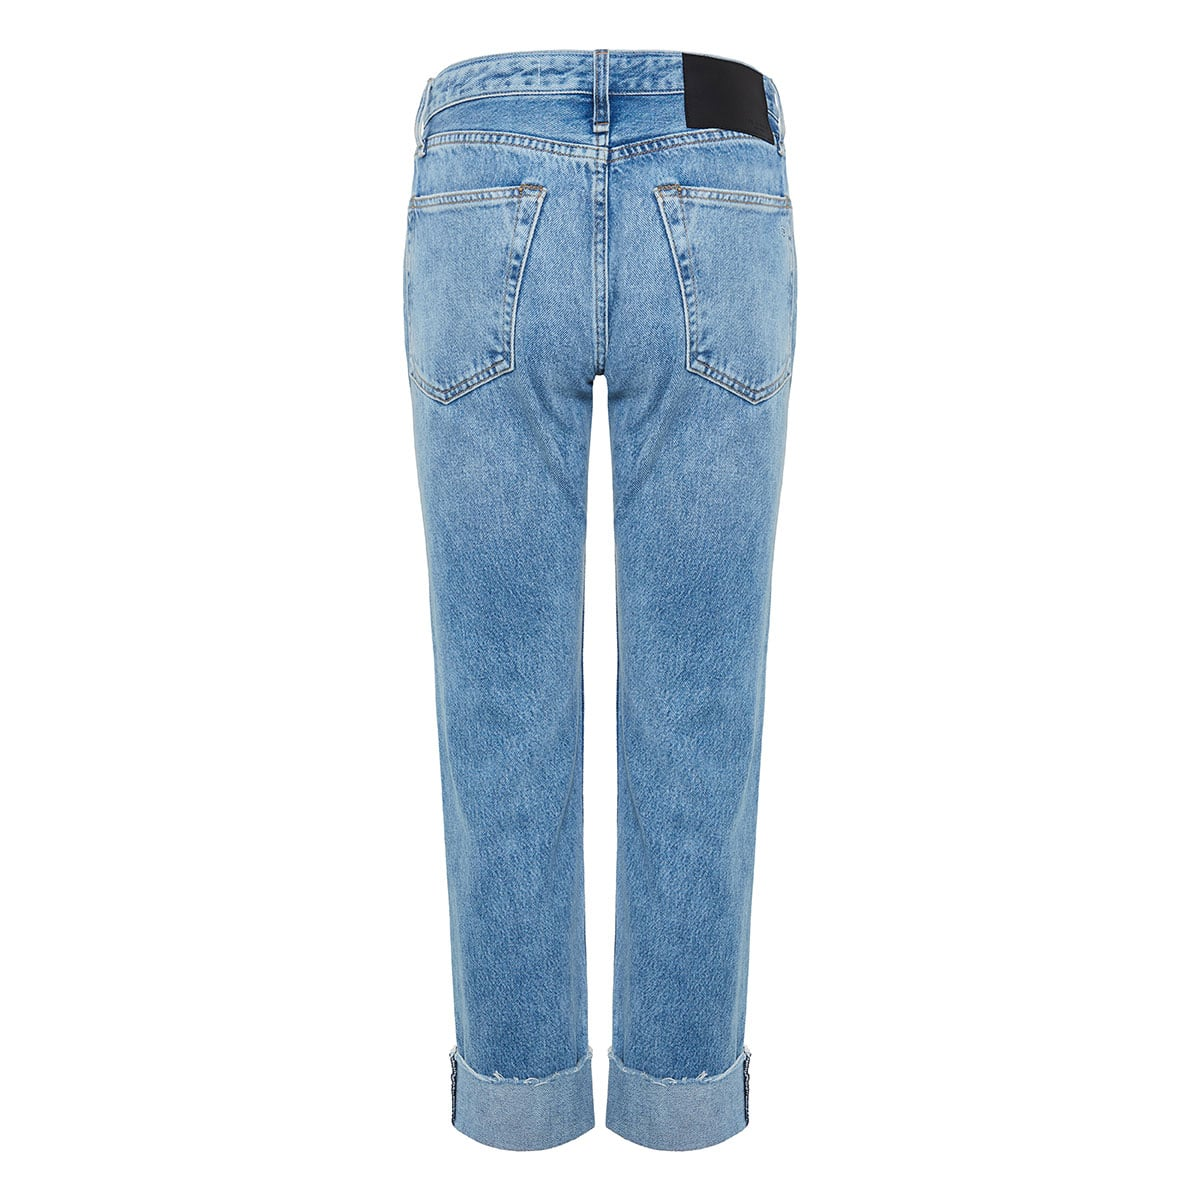 Rosa distressed jeans